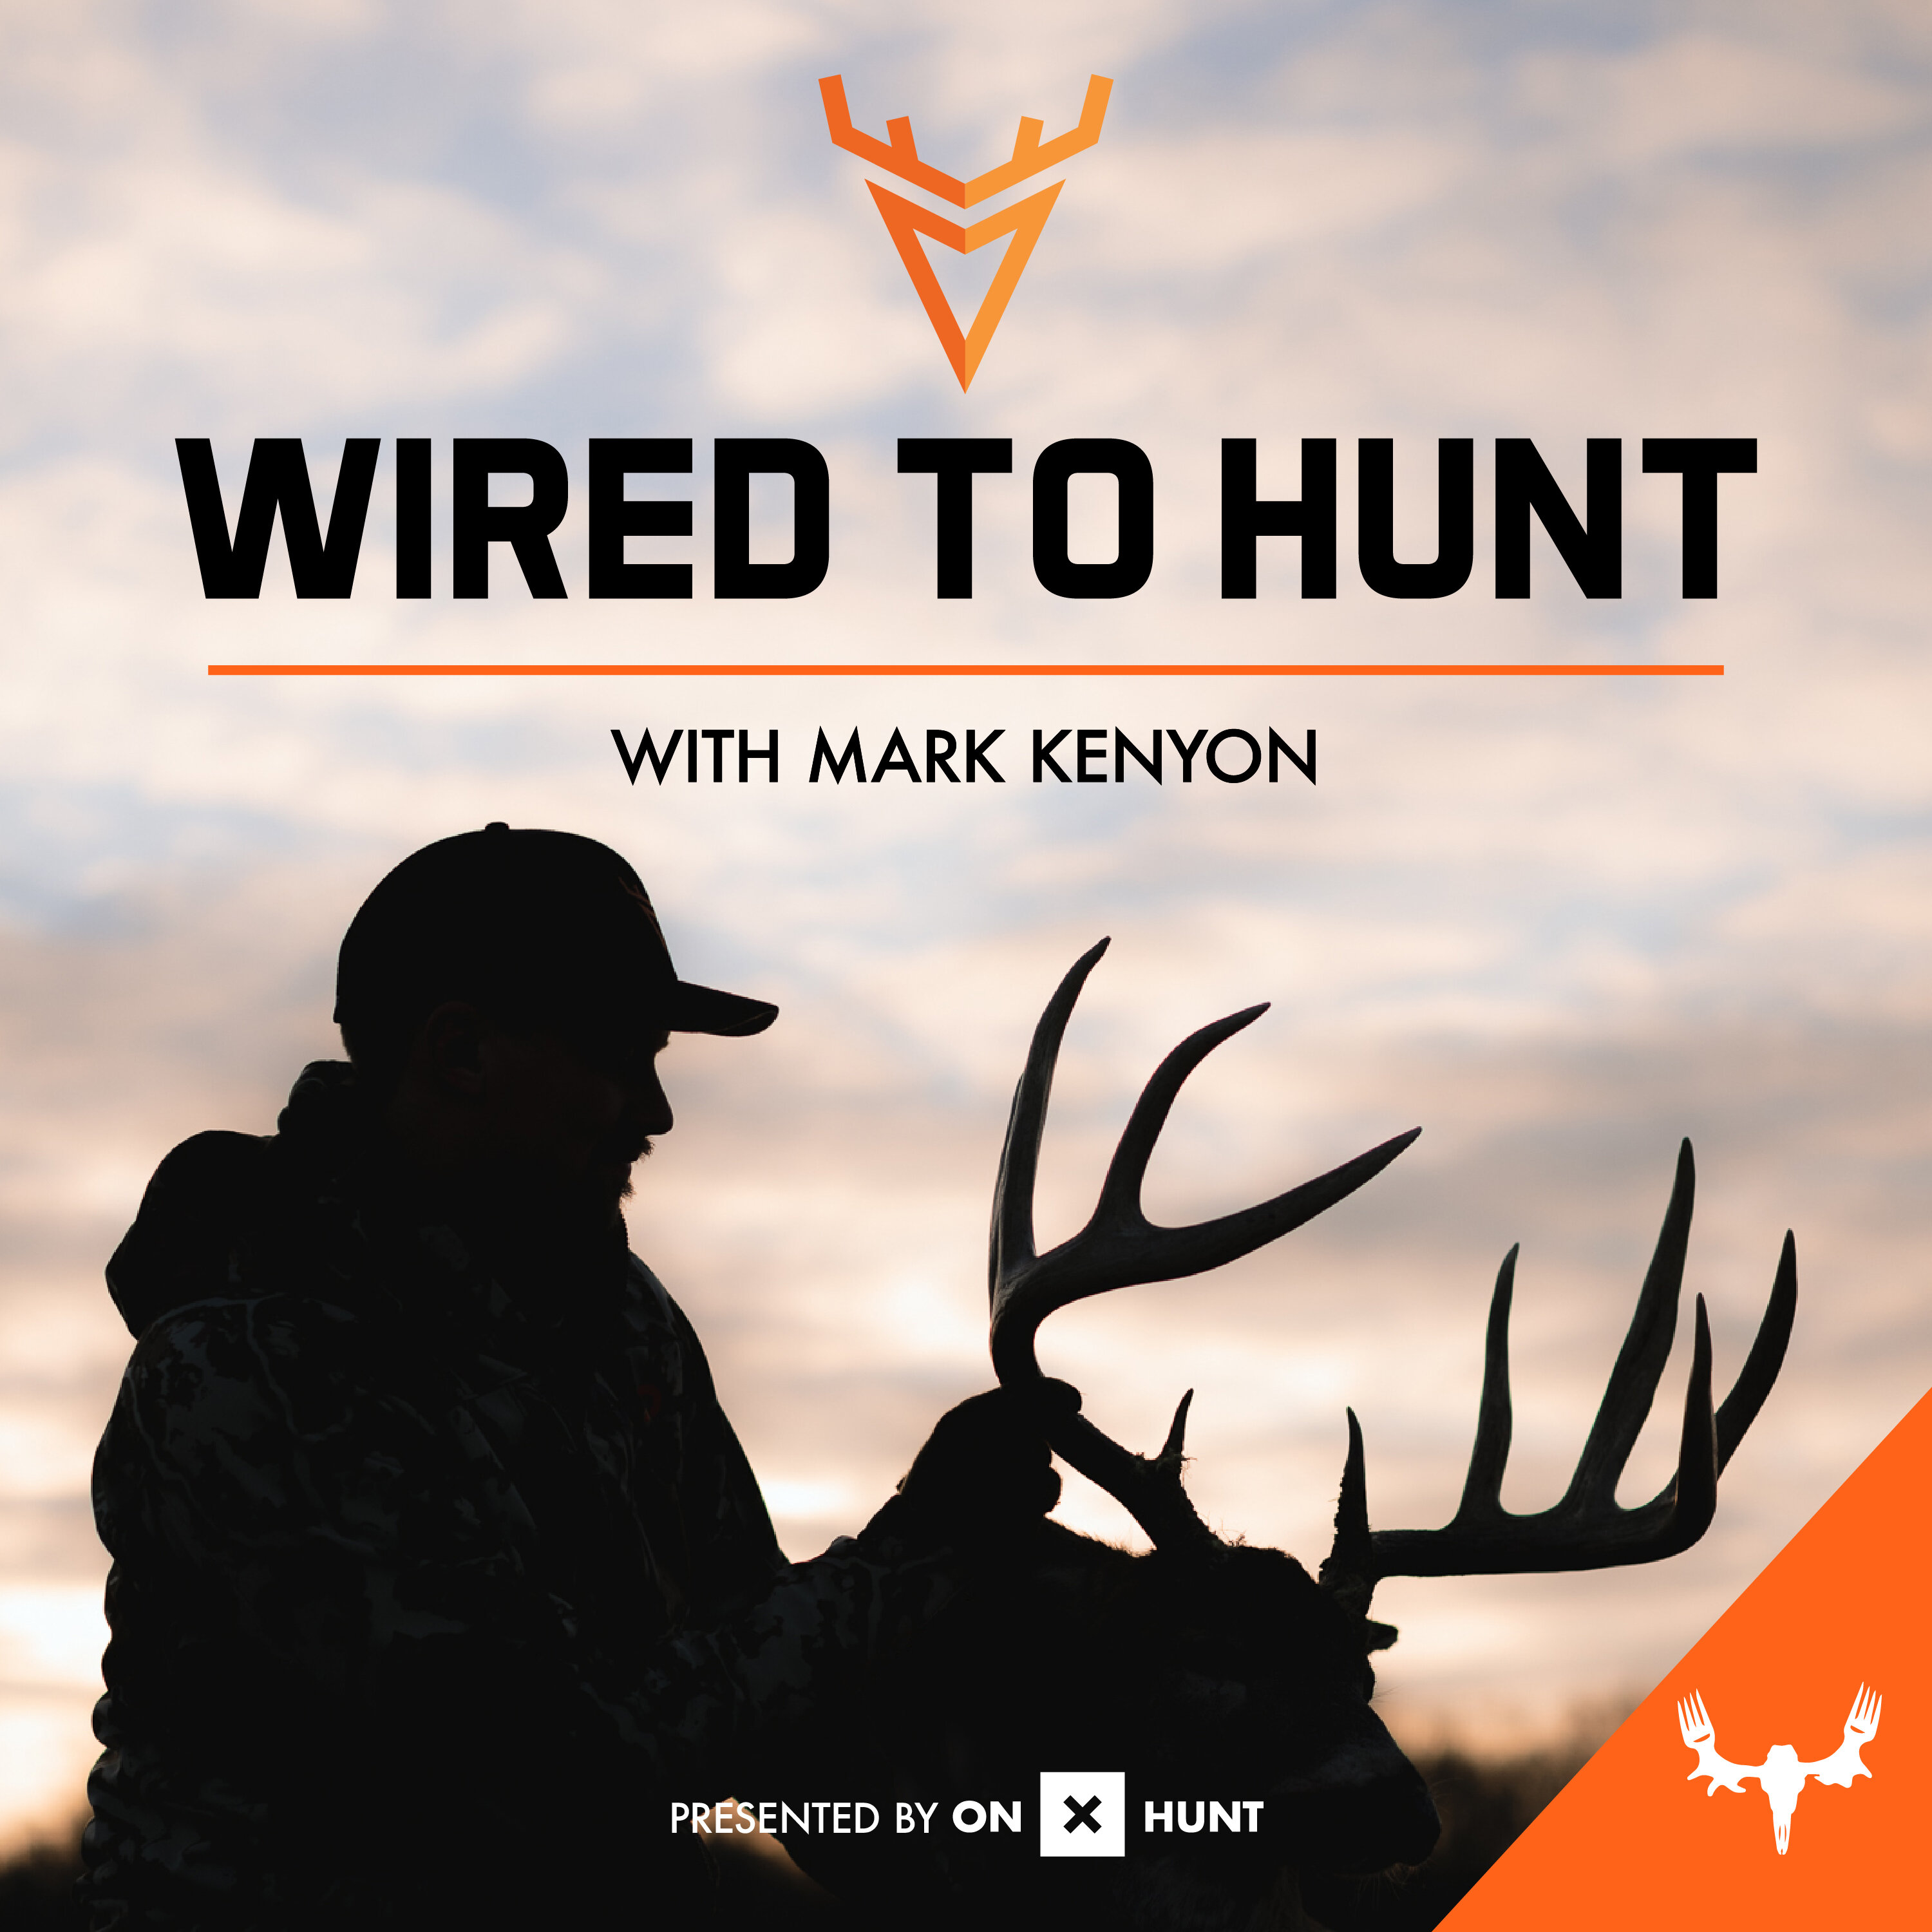 Ep 341: Planning a Once-in-a-Lifetime Michigan Deer Hunt with Dan Johnson